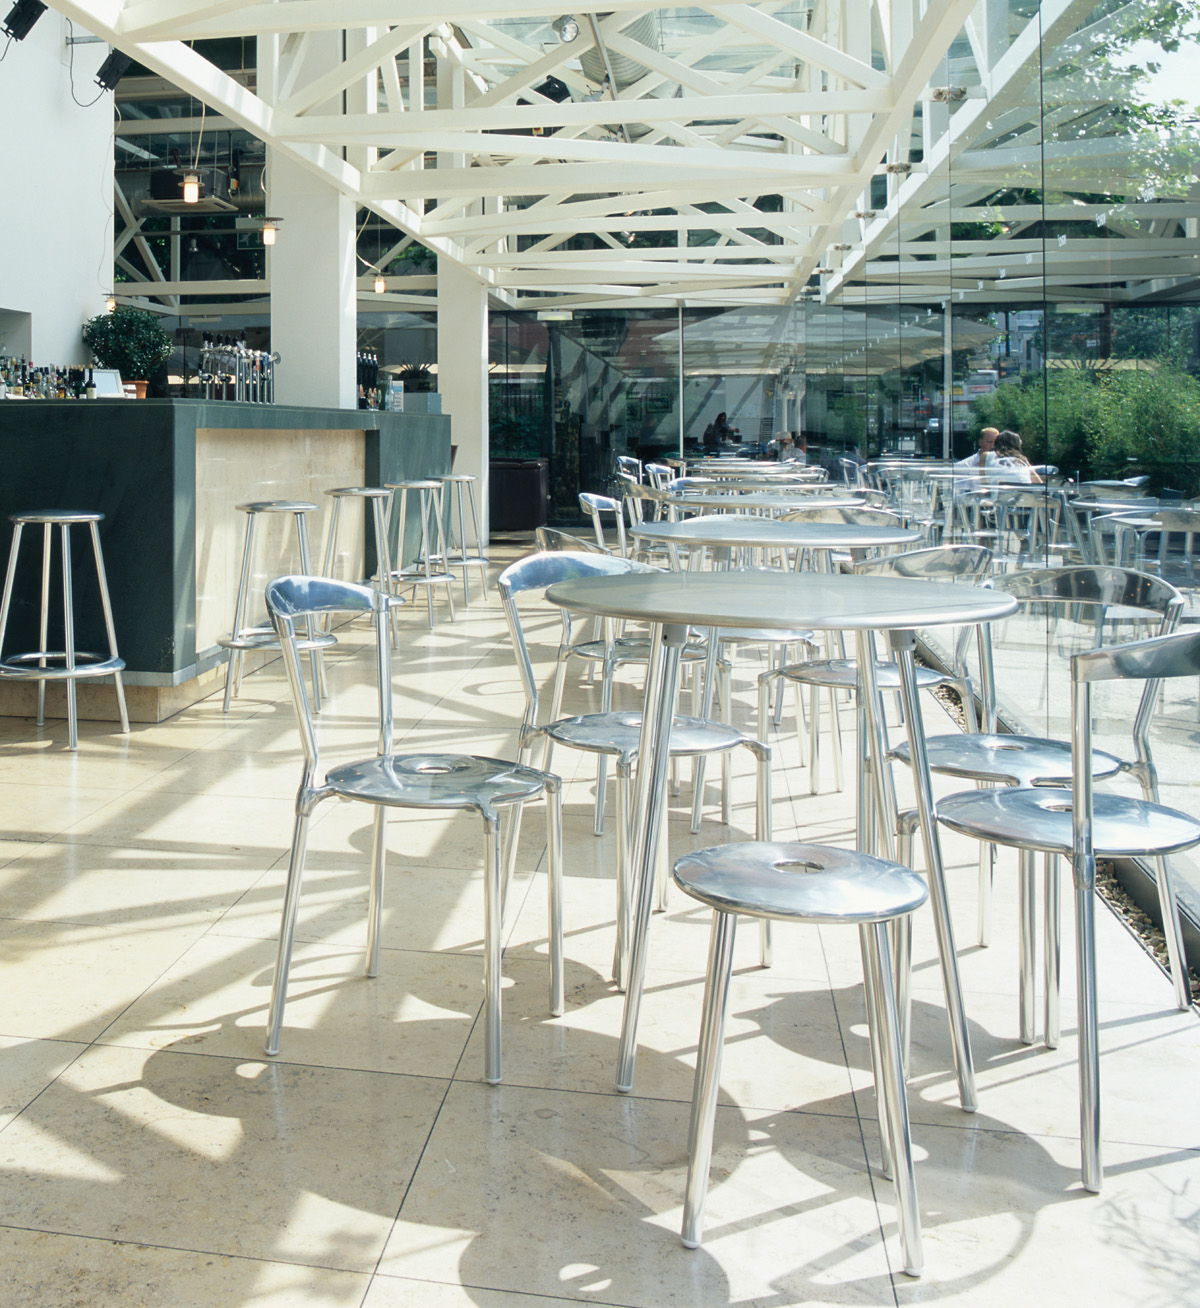 Luna Restaurnat Chair, Stools and Tables